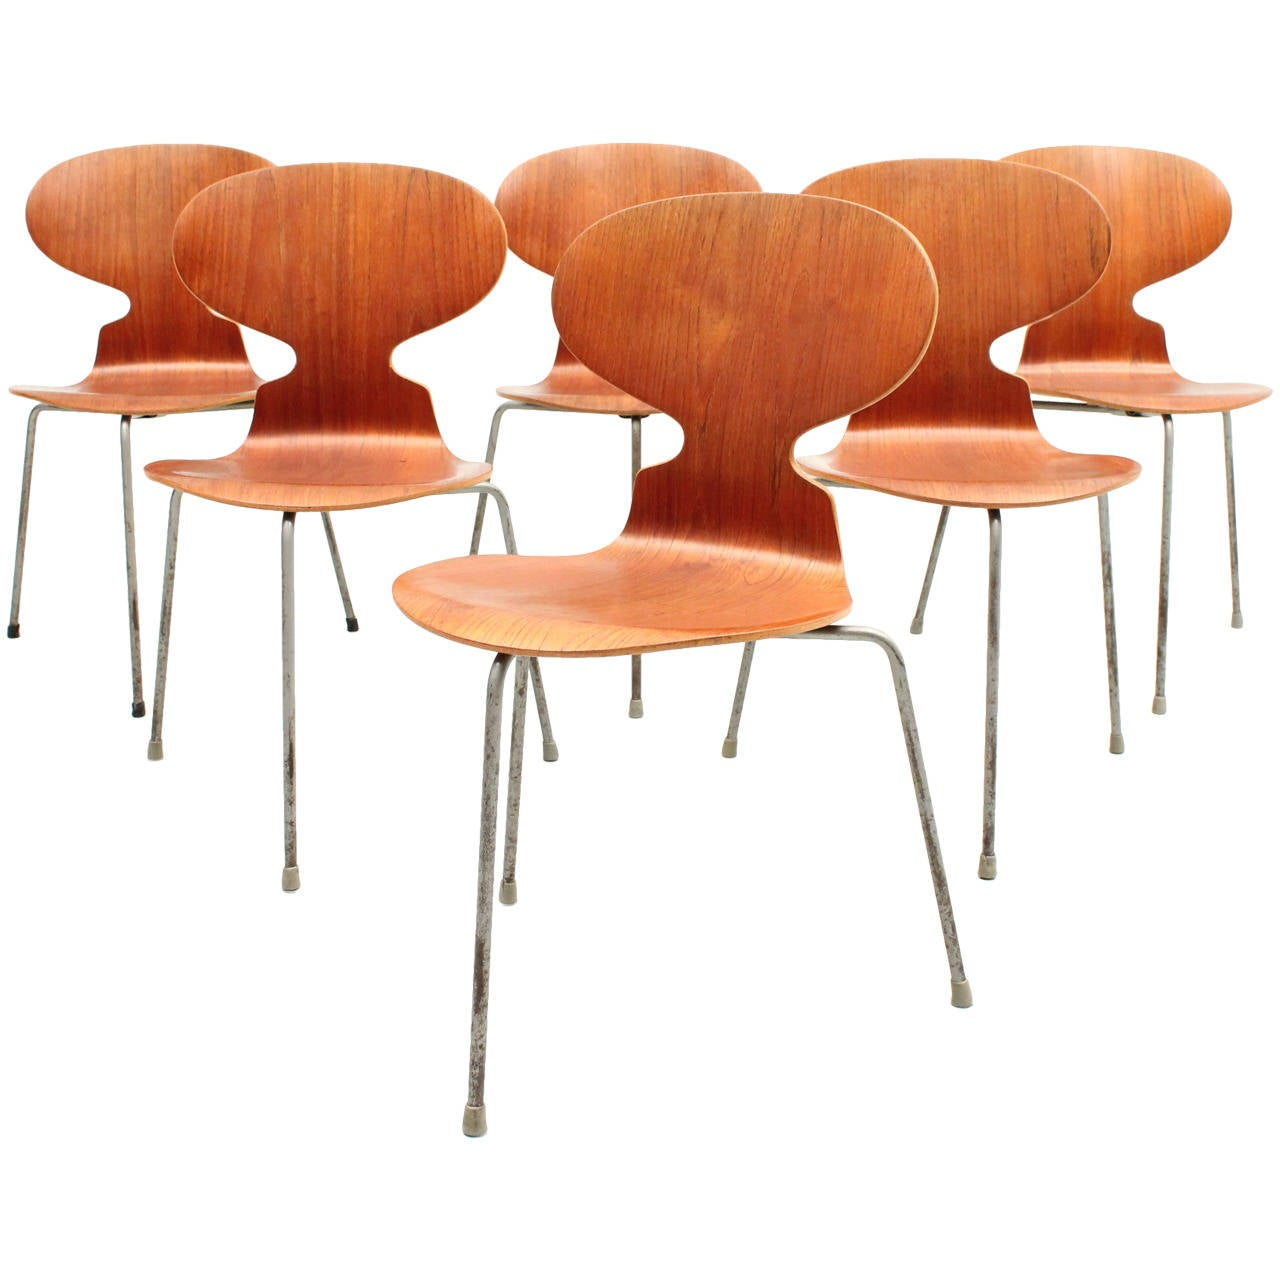 Danish, Mid-Century Modern Set of Six Arne Jacobsen Ant Chairs, FH3100 1